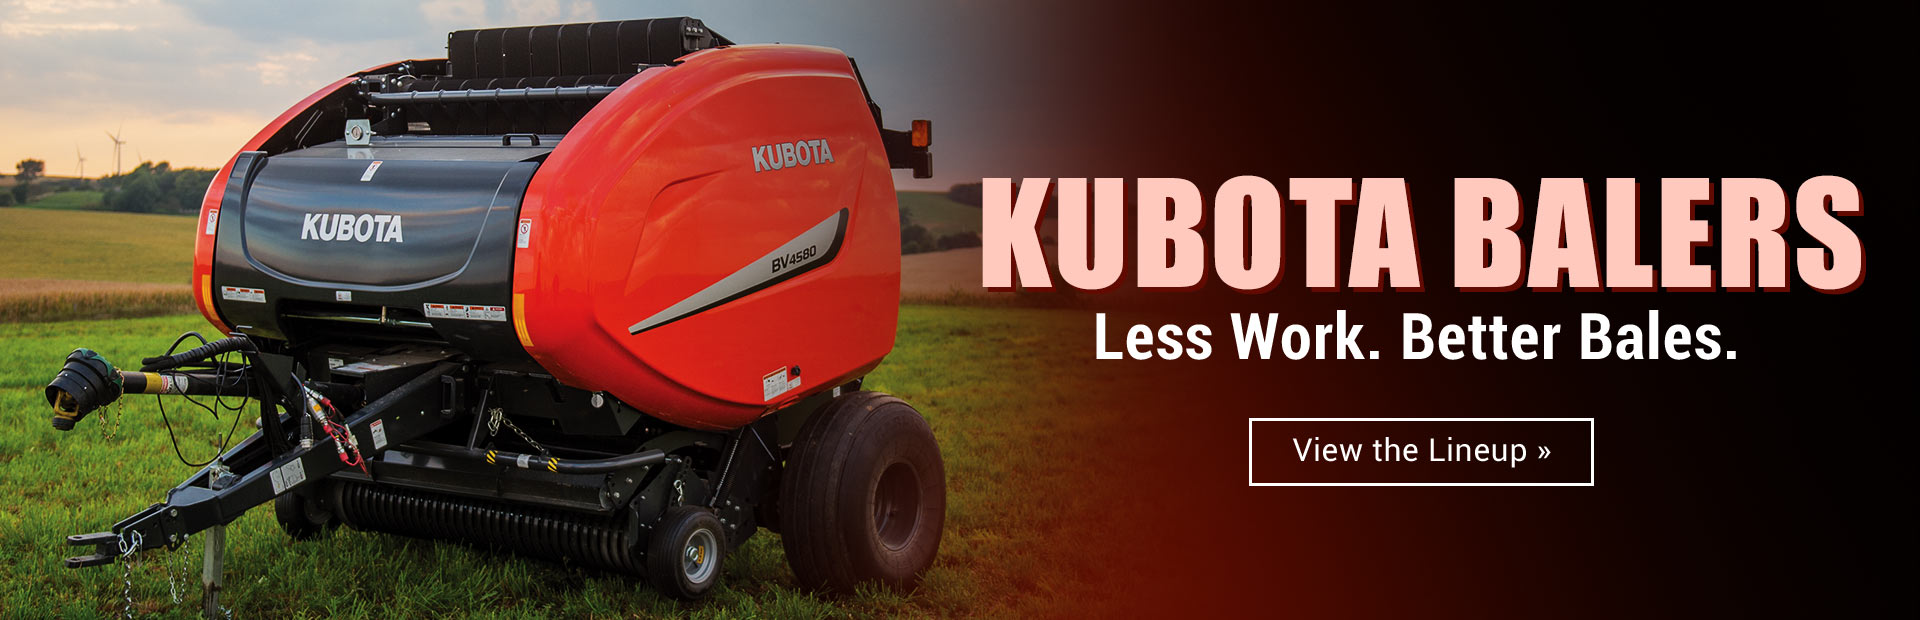 Kubota Balers: Click here to view the lineup.